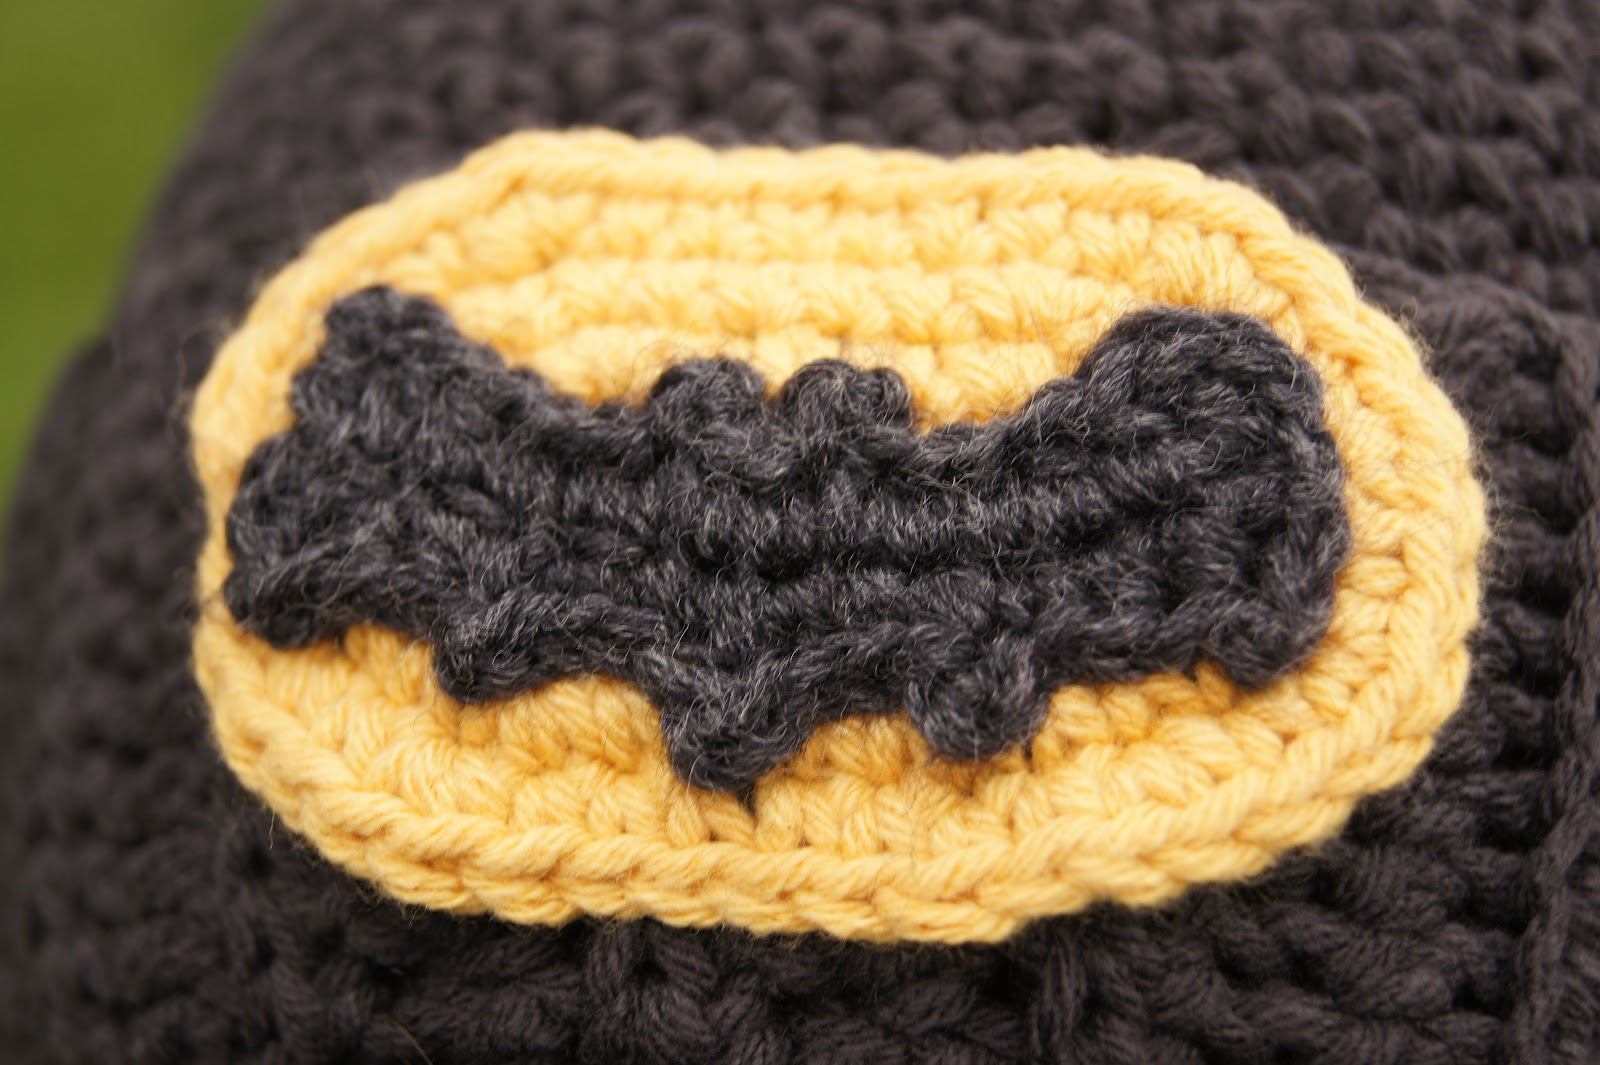 Crochet Pattern Batman Hat : Batman Crochet Pattern Related Keywords - Batman Crochet ...